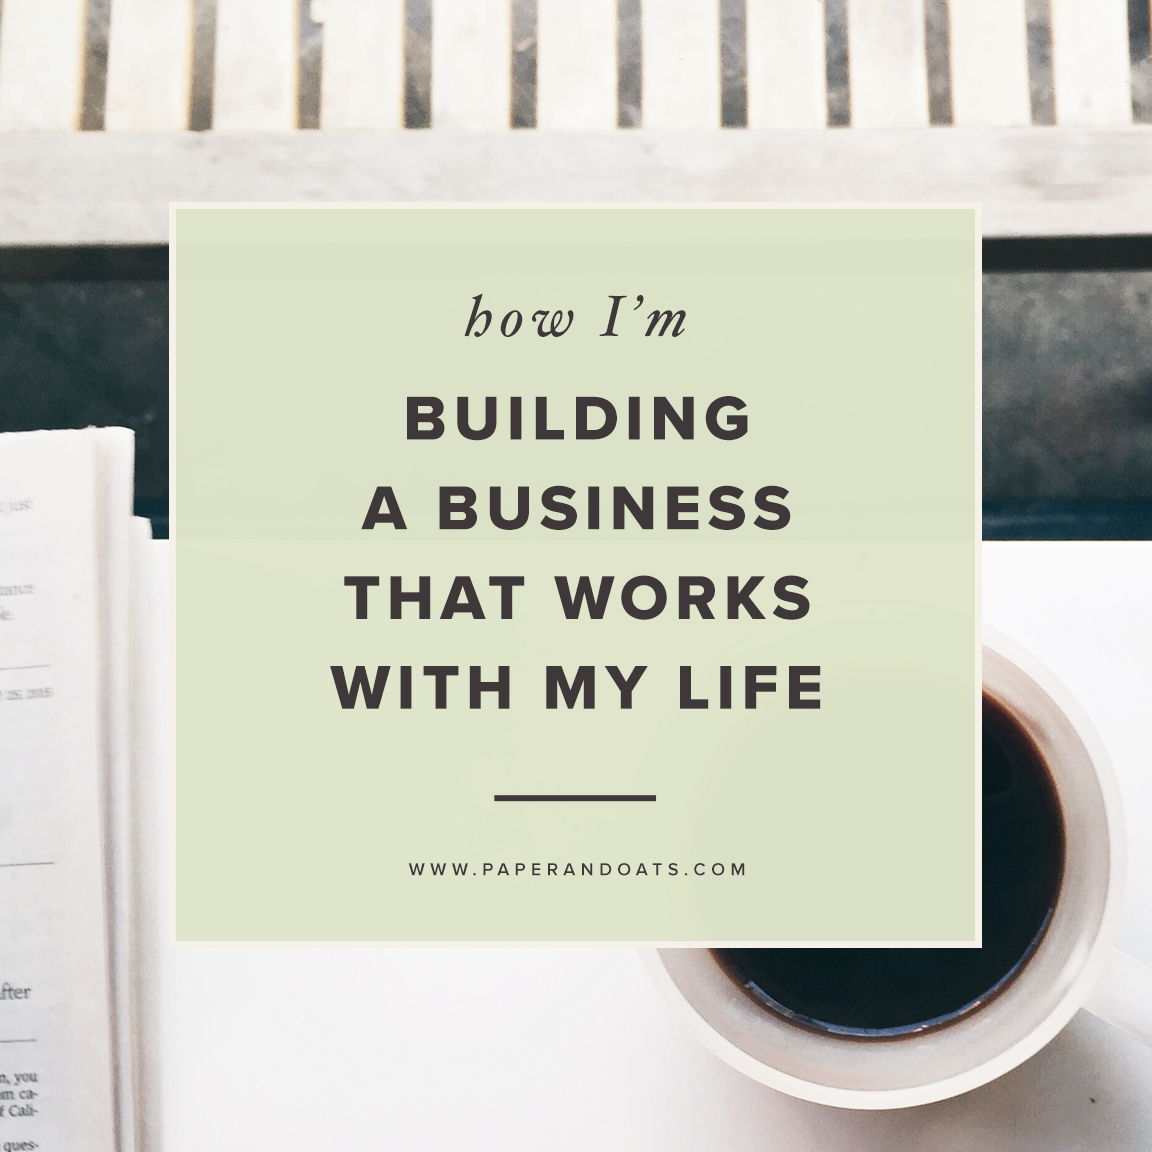 How I'm building a business that works with my life (2017 review + survey) by Paper + Oats